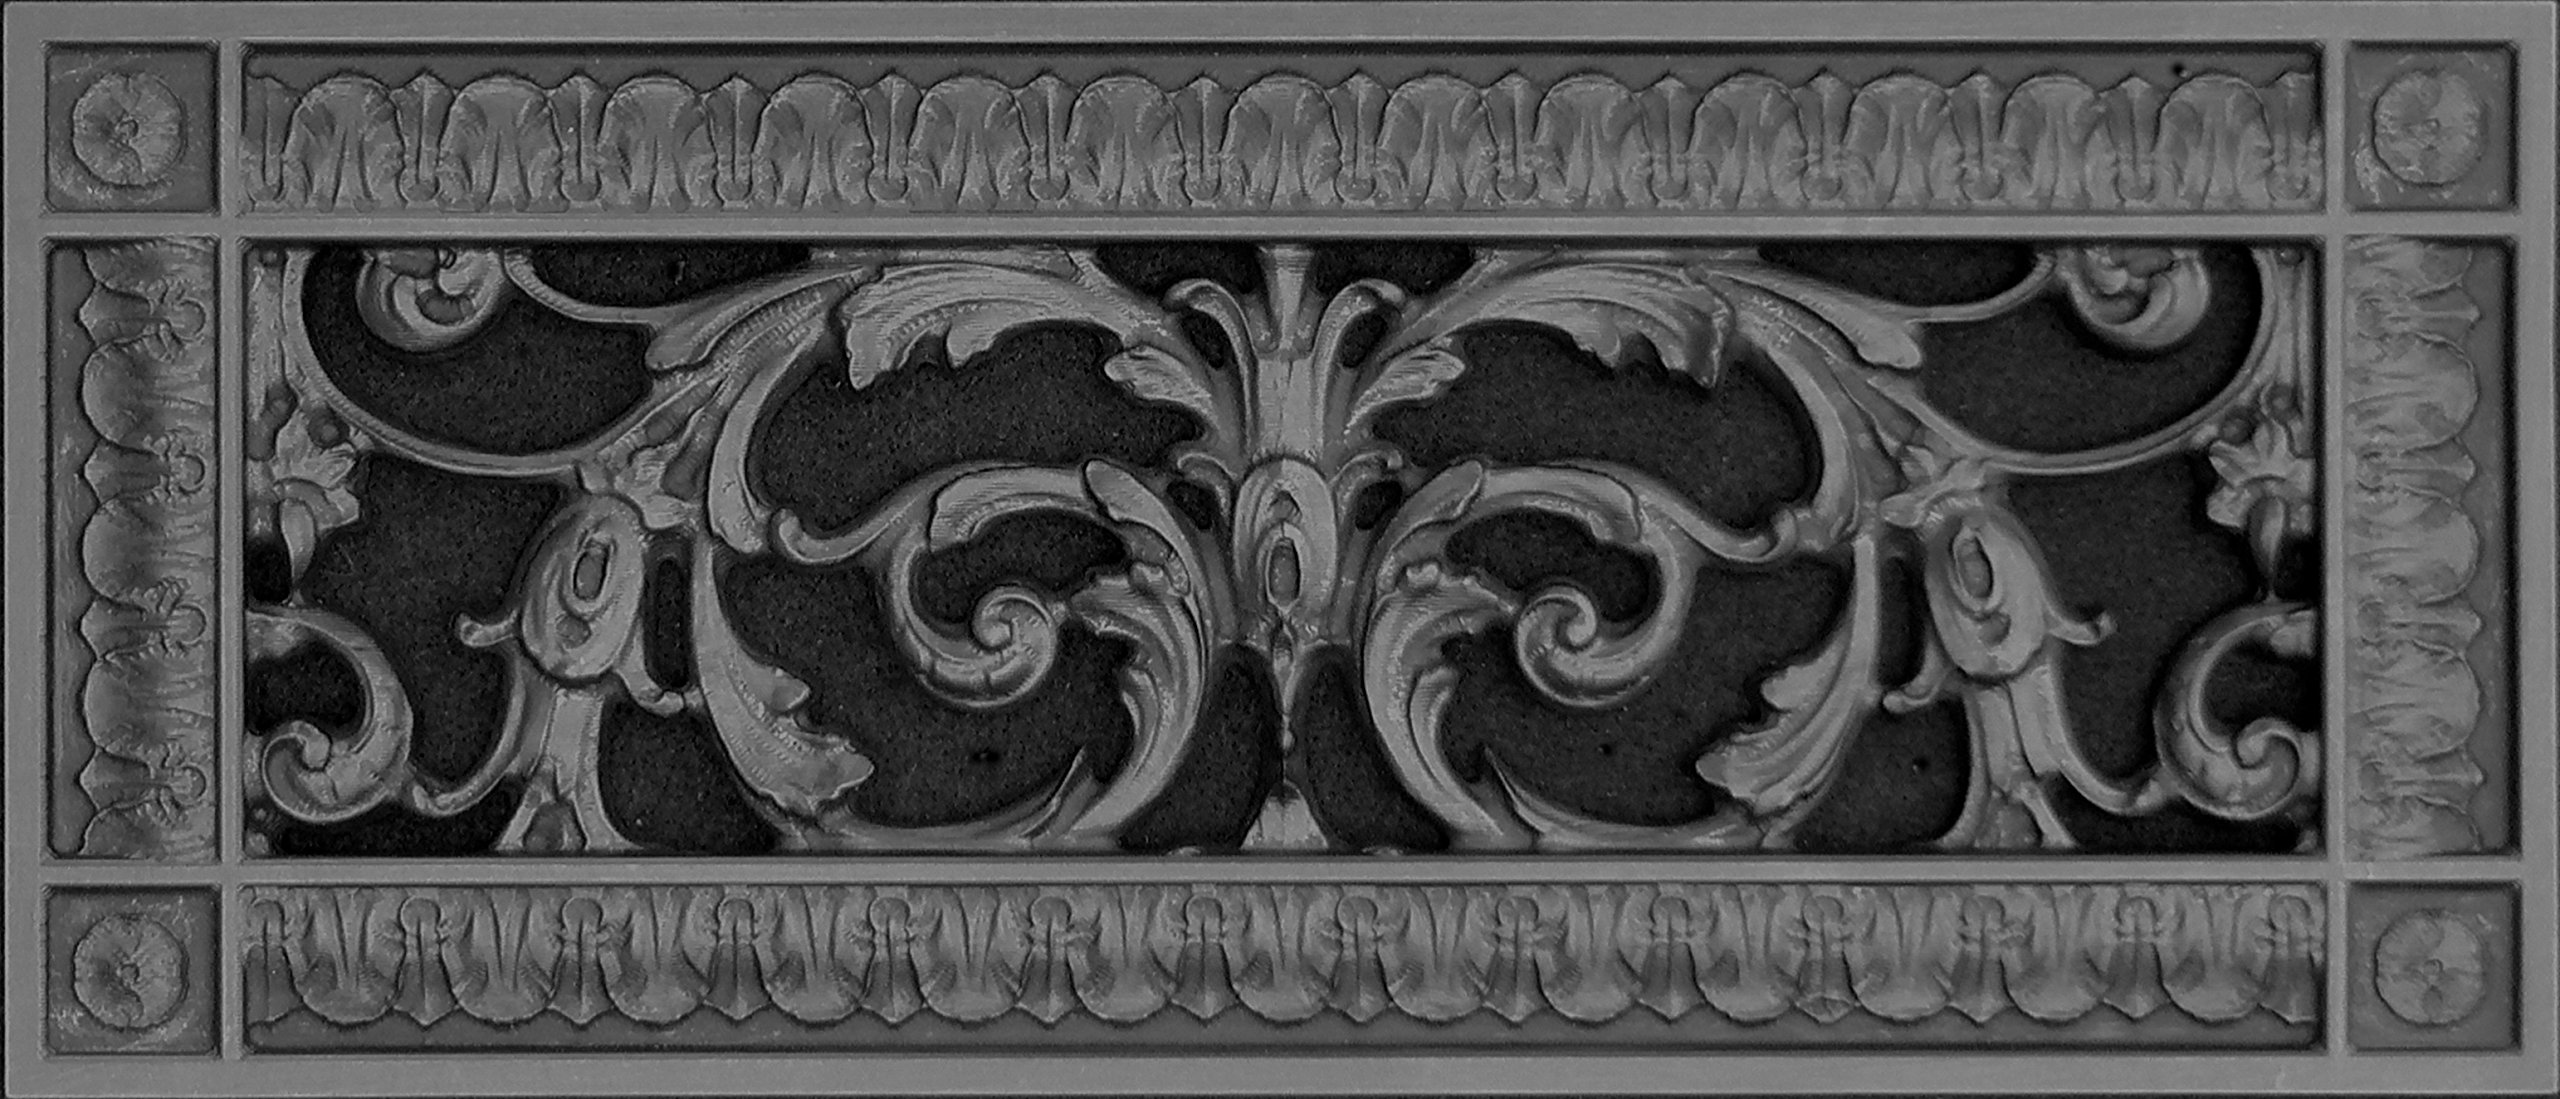 """Decorative Vent Cover, Grille, Return Register, Made of Urethane Resin, in French Style fits Over a 4""""x 12"""" Duct Opening. Total Size, 6"""" x 14"""", Walls & Ceilings use only(not for Floors) (Black)"""